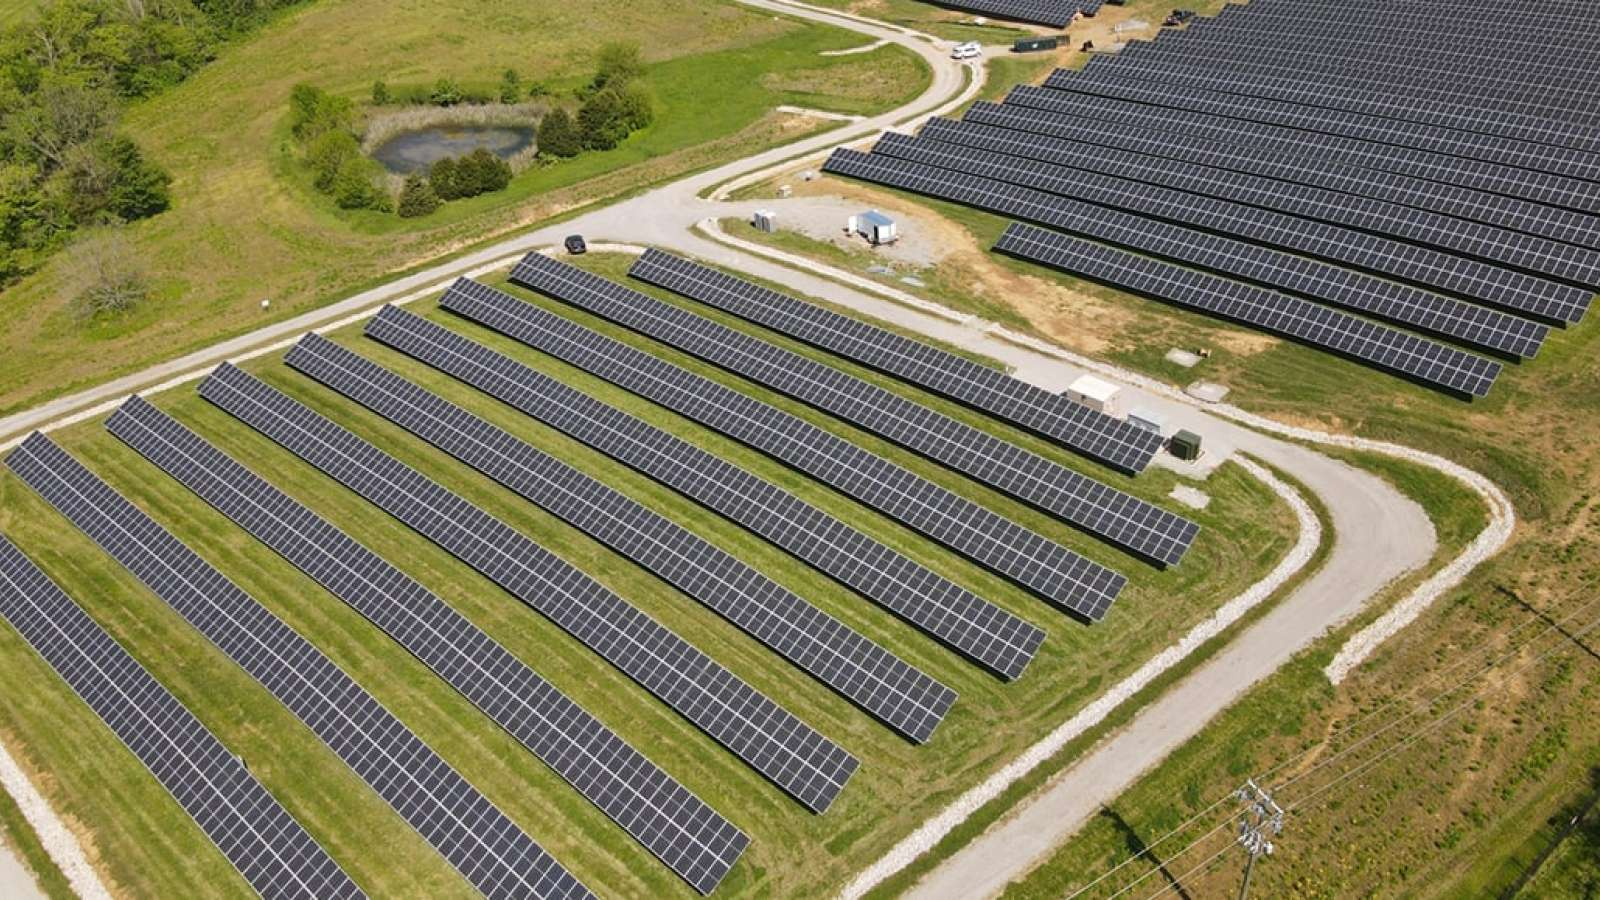 Aerial view of Solar Share solar field